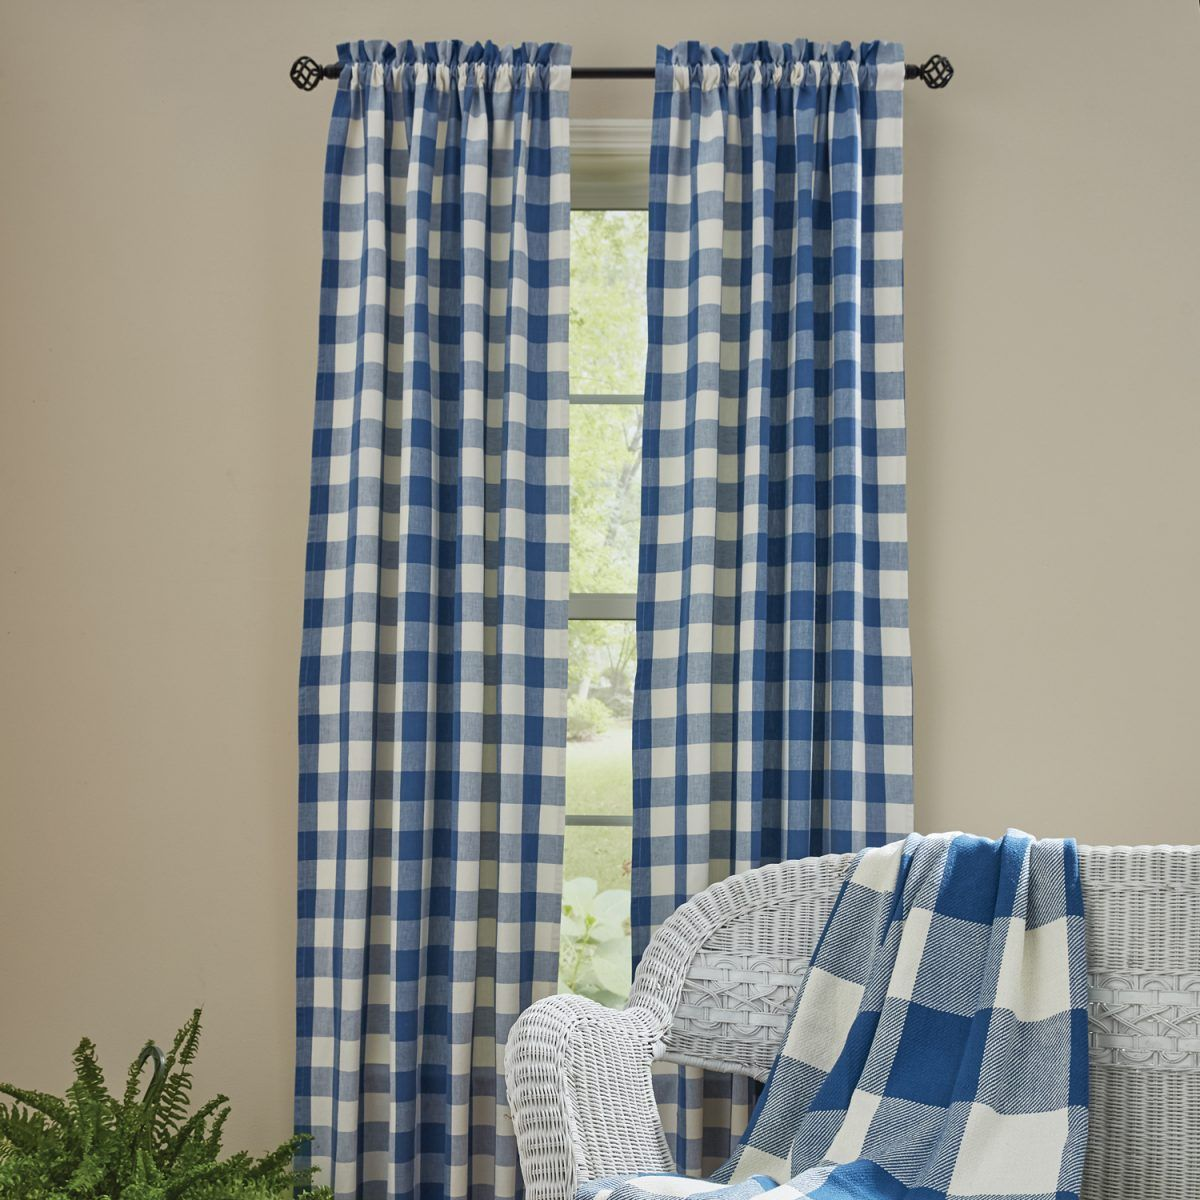 China Blue Curtains Wicklow China Blue Drapes 84